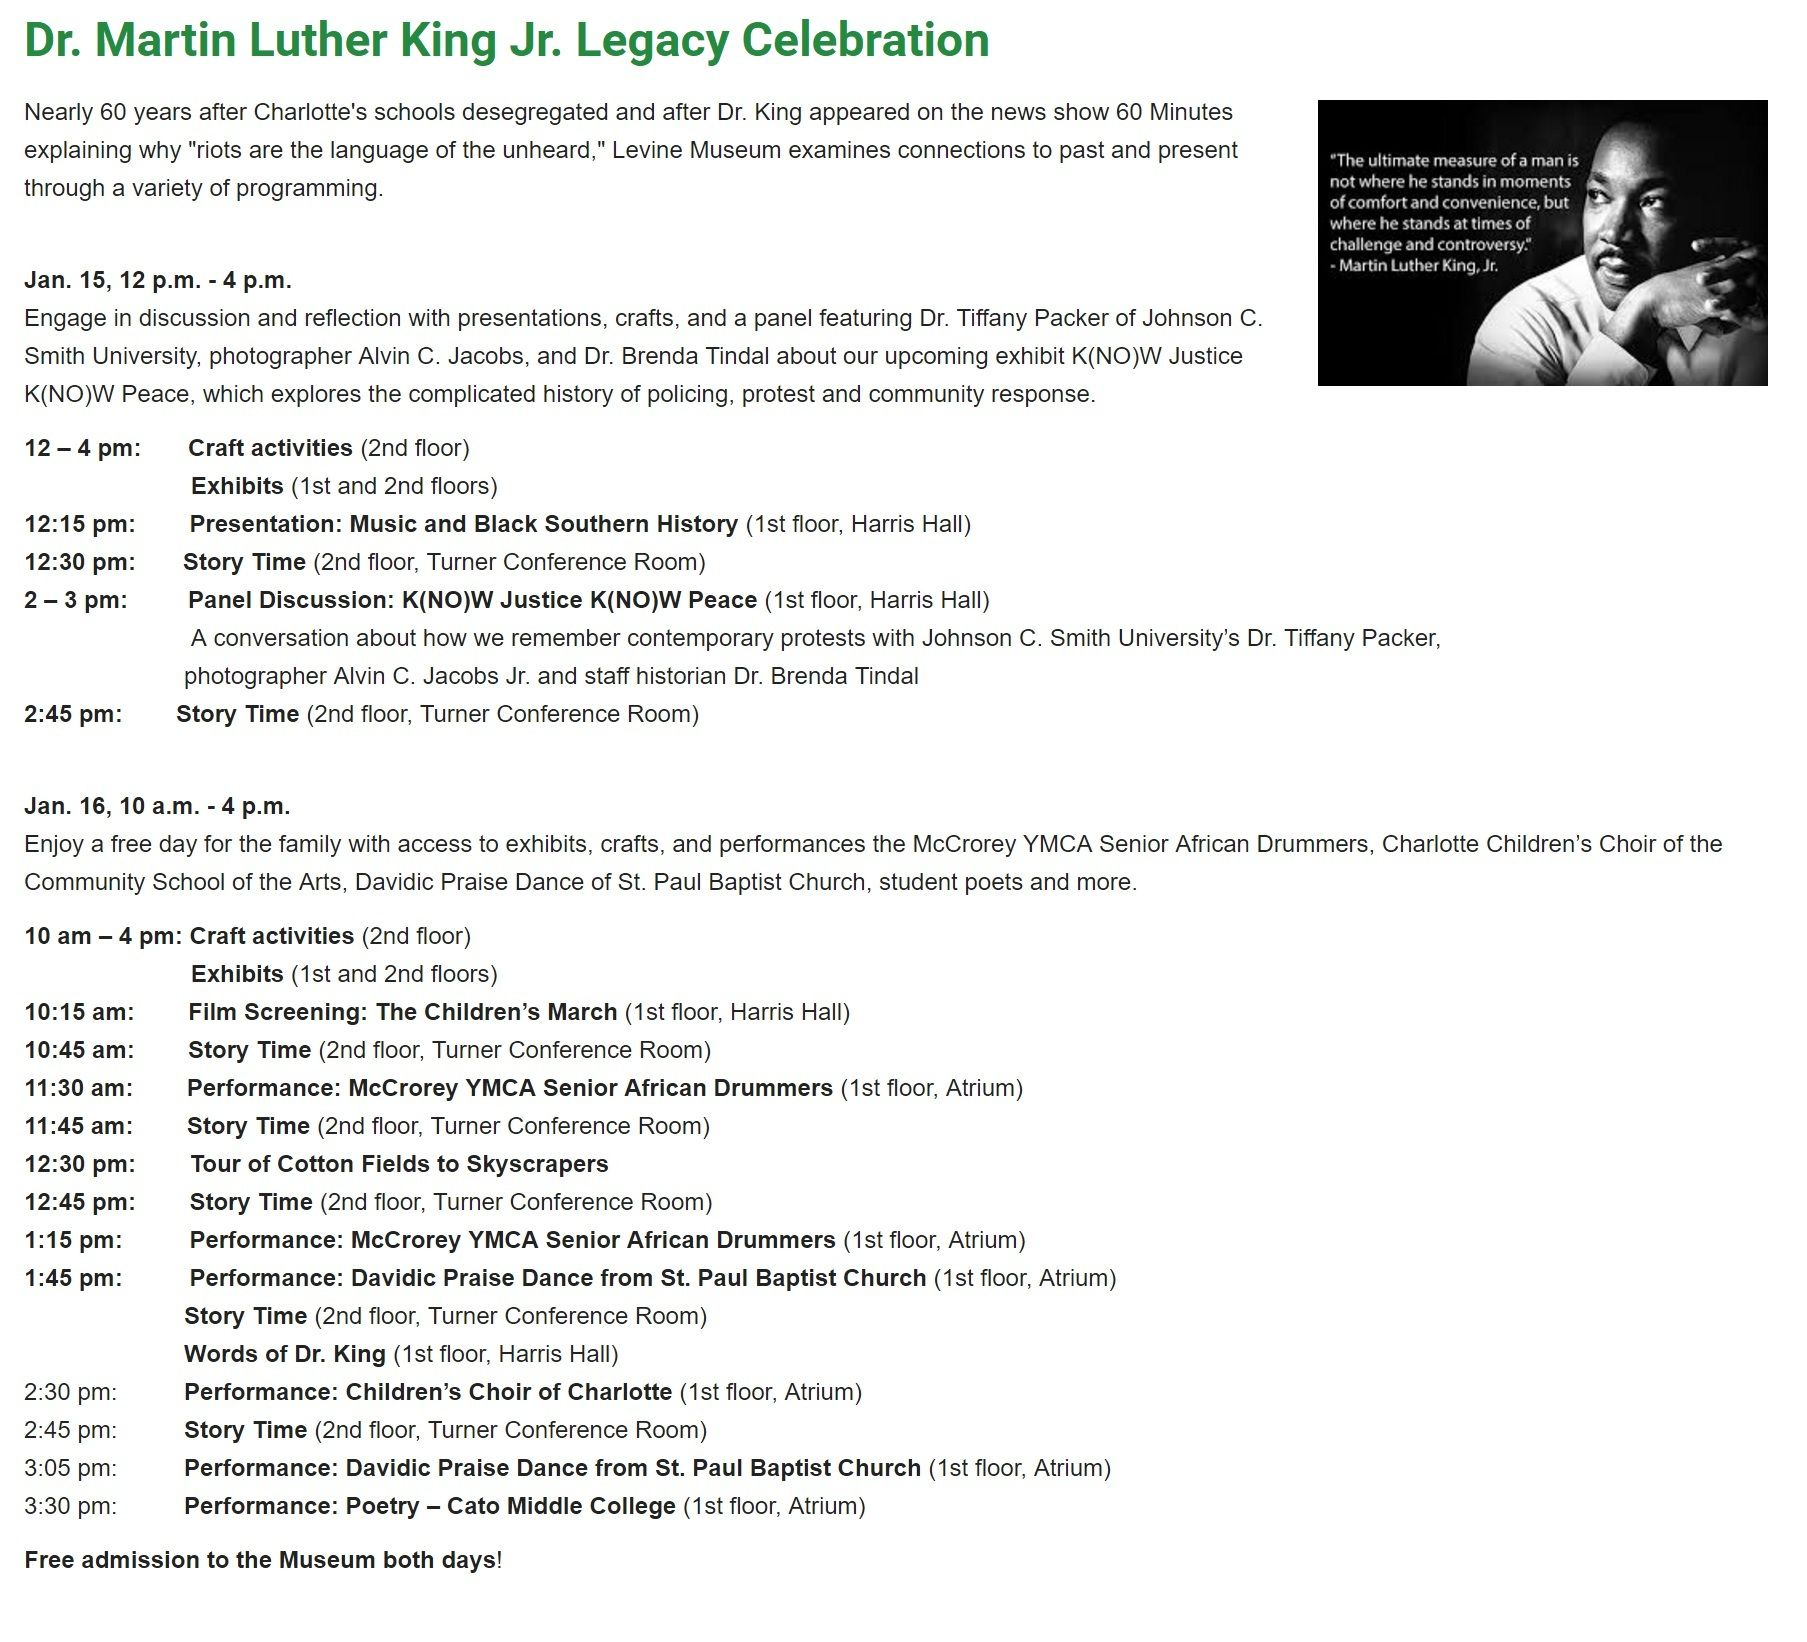 Charlotte S Levine Museum Honors Dr M L King Jr Dr Martin Luther King Dr Martin Luther King Jr Martin Luther Jr